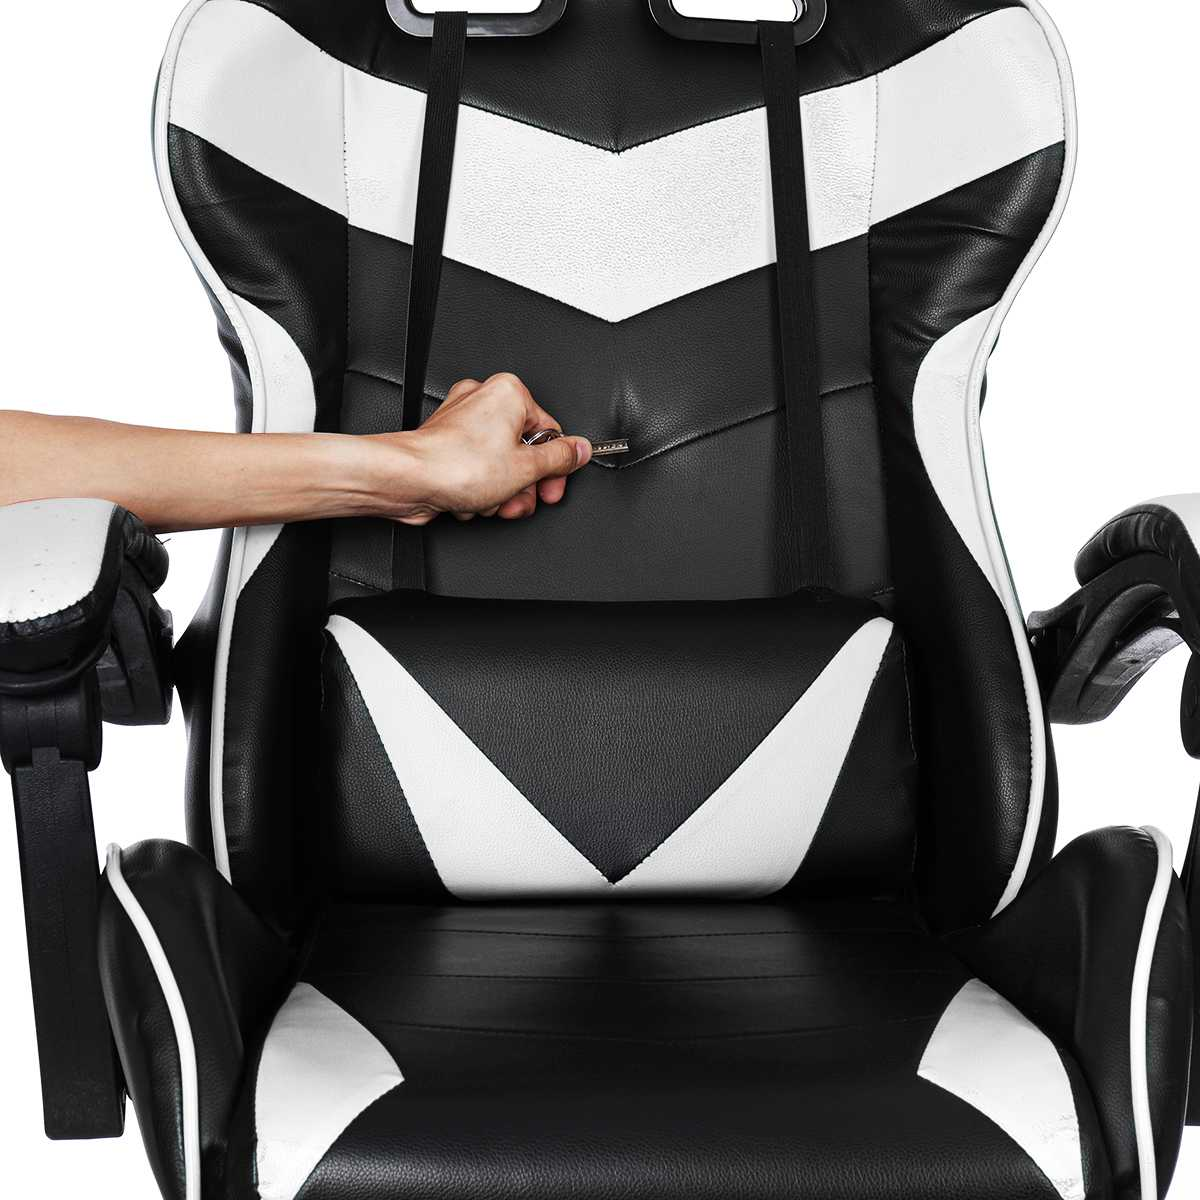 H2a4646a9905b409b8be96474191a126df - Office Gaming Chair PVC Household Armchair Lift and Swivel Function Ergonomic Office Computer Chair Wcg Gamer Chairs